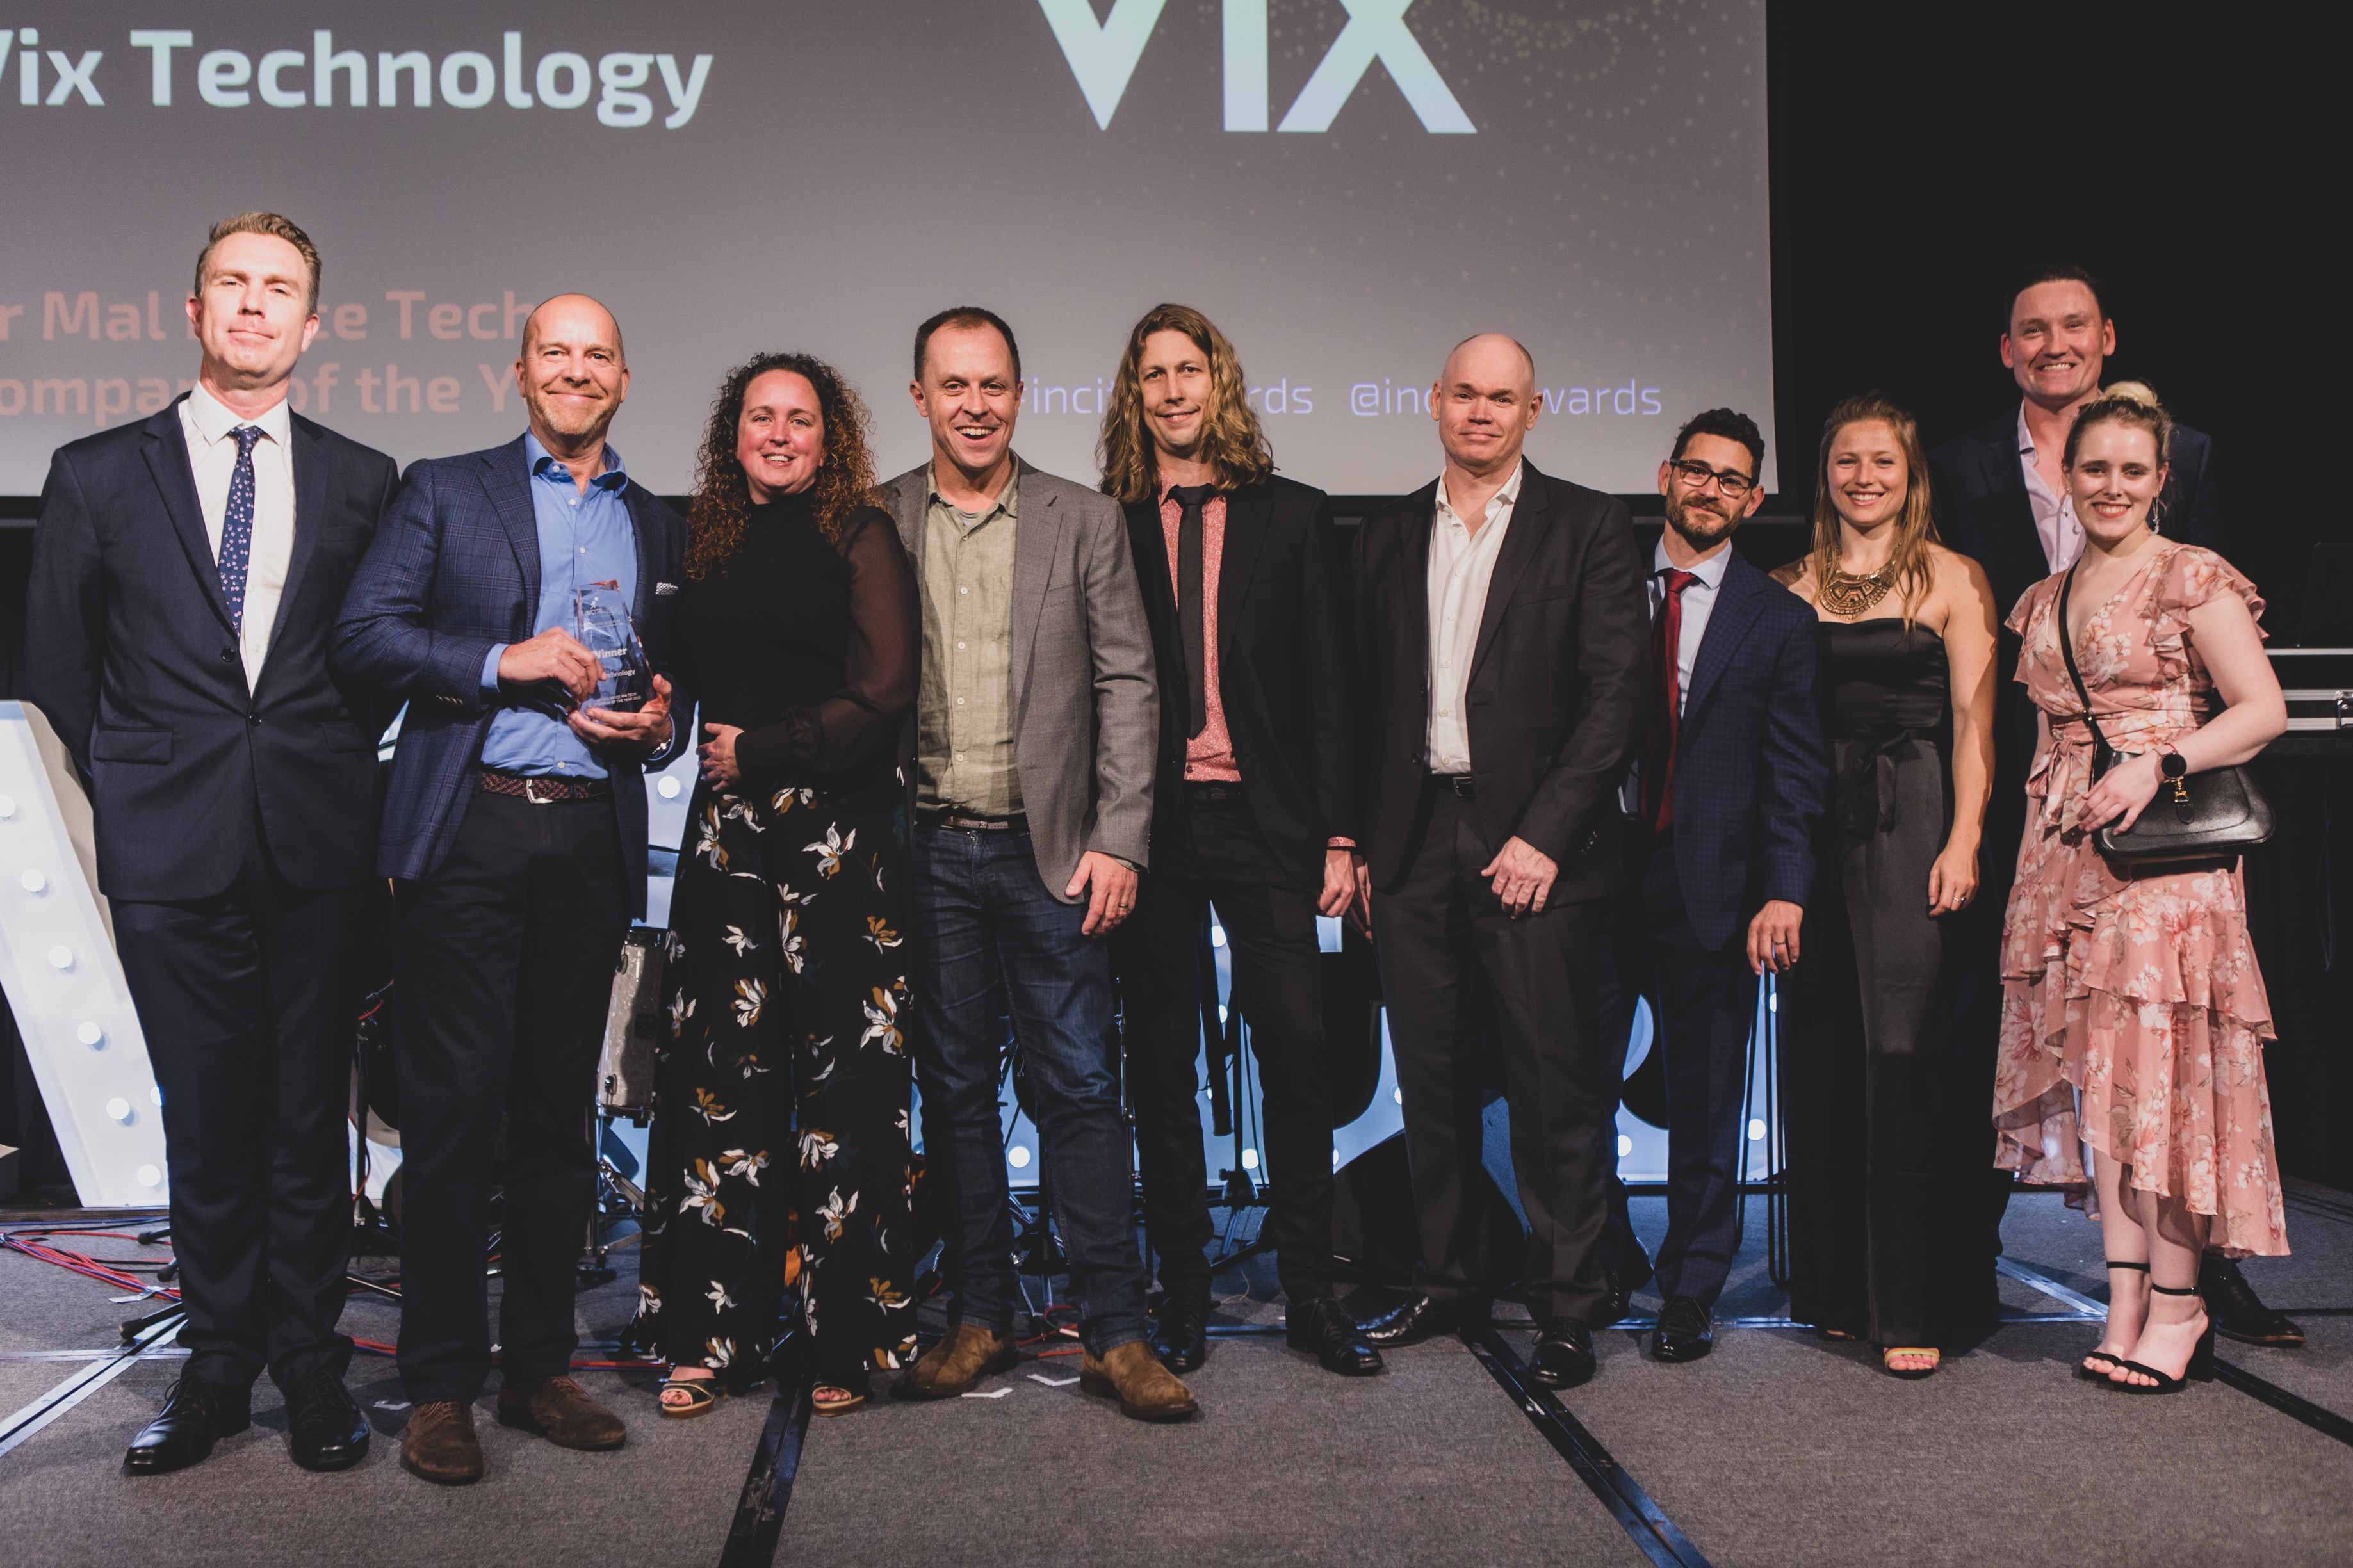 Vix Technology on stage winning an award at the 30th Incite Awards